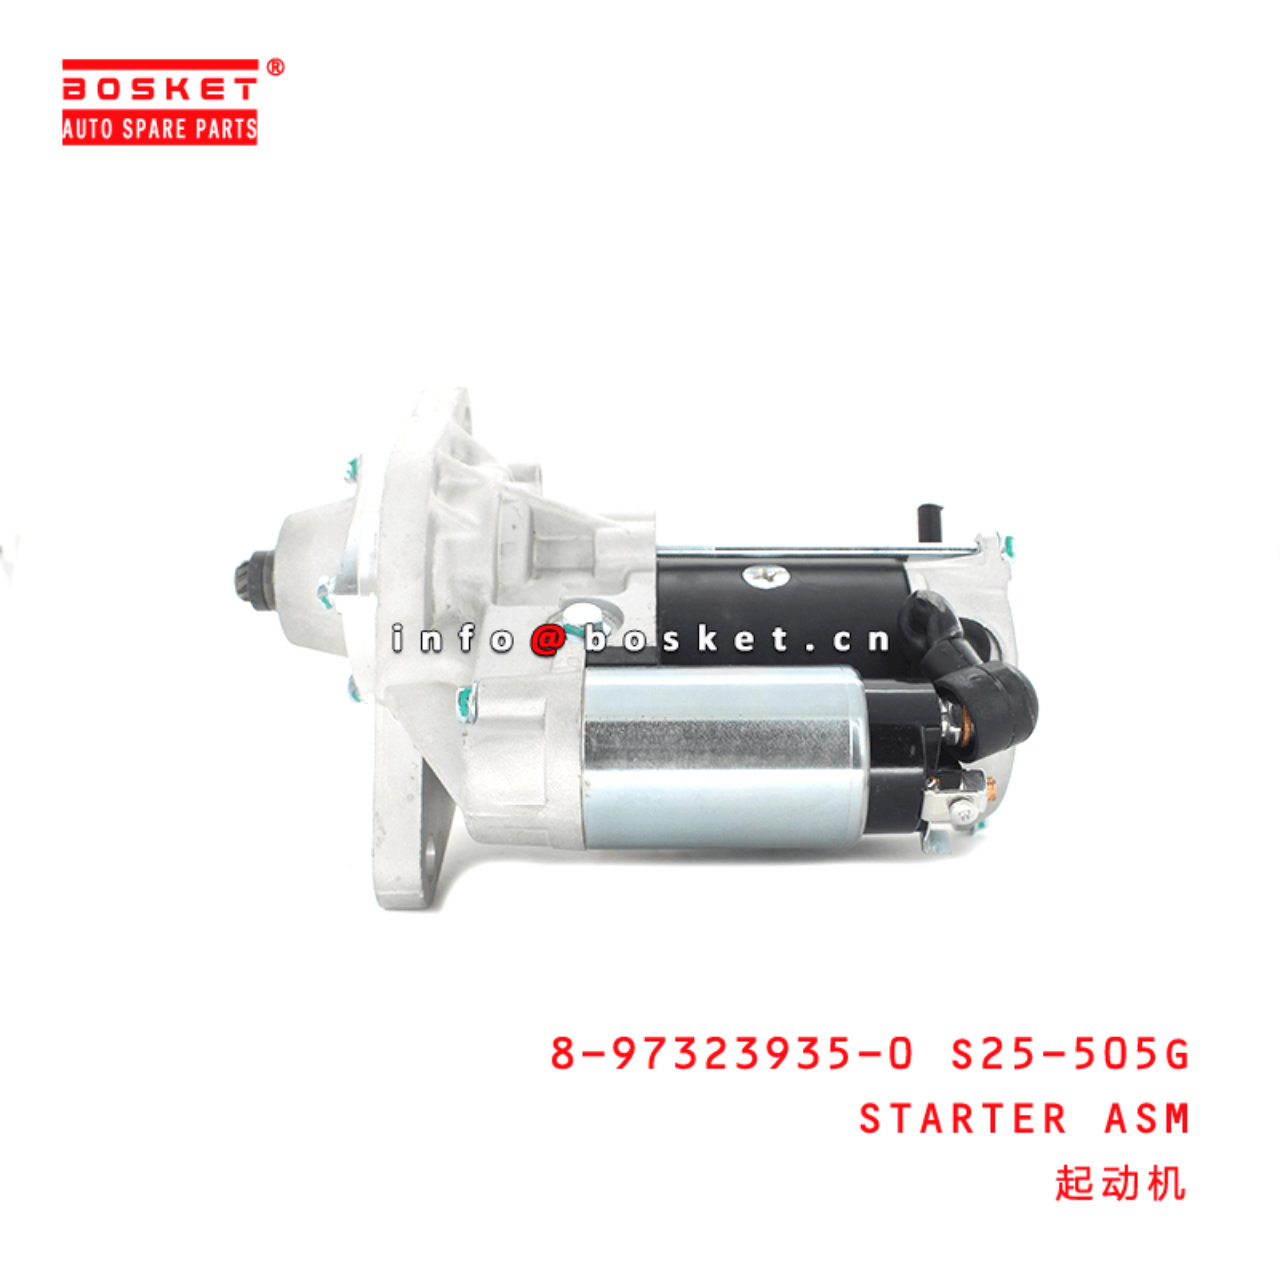 8-97323935-0 Starter Assembly 8973239350 Suitable for ISUZU 700P 4HK1